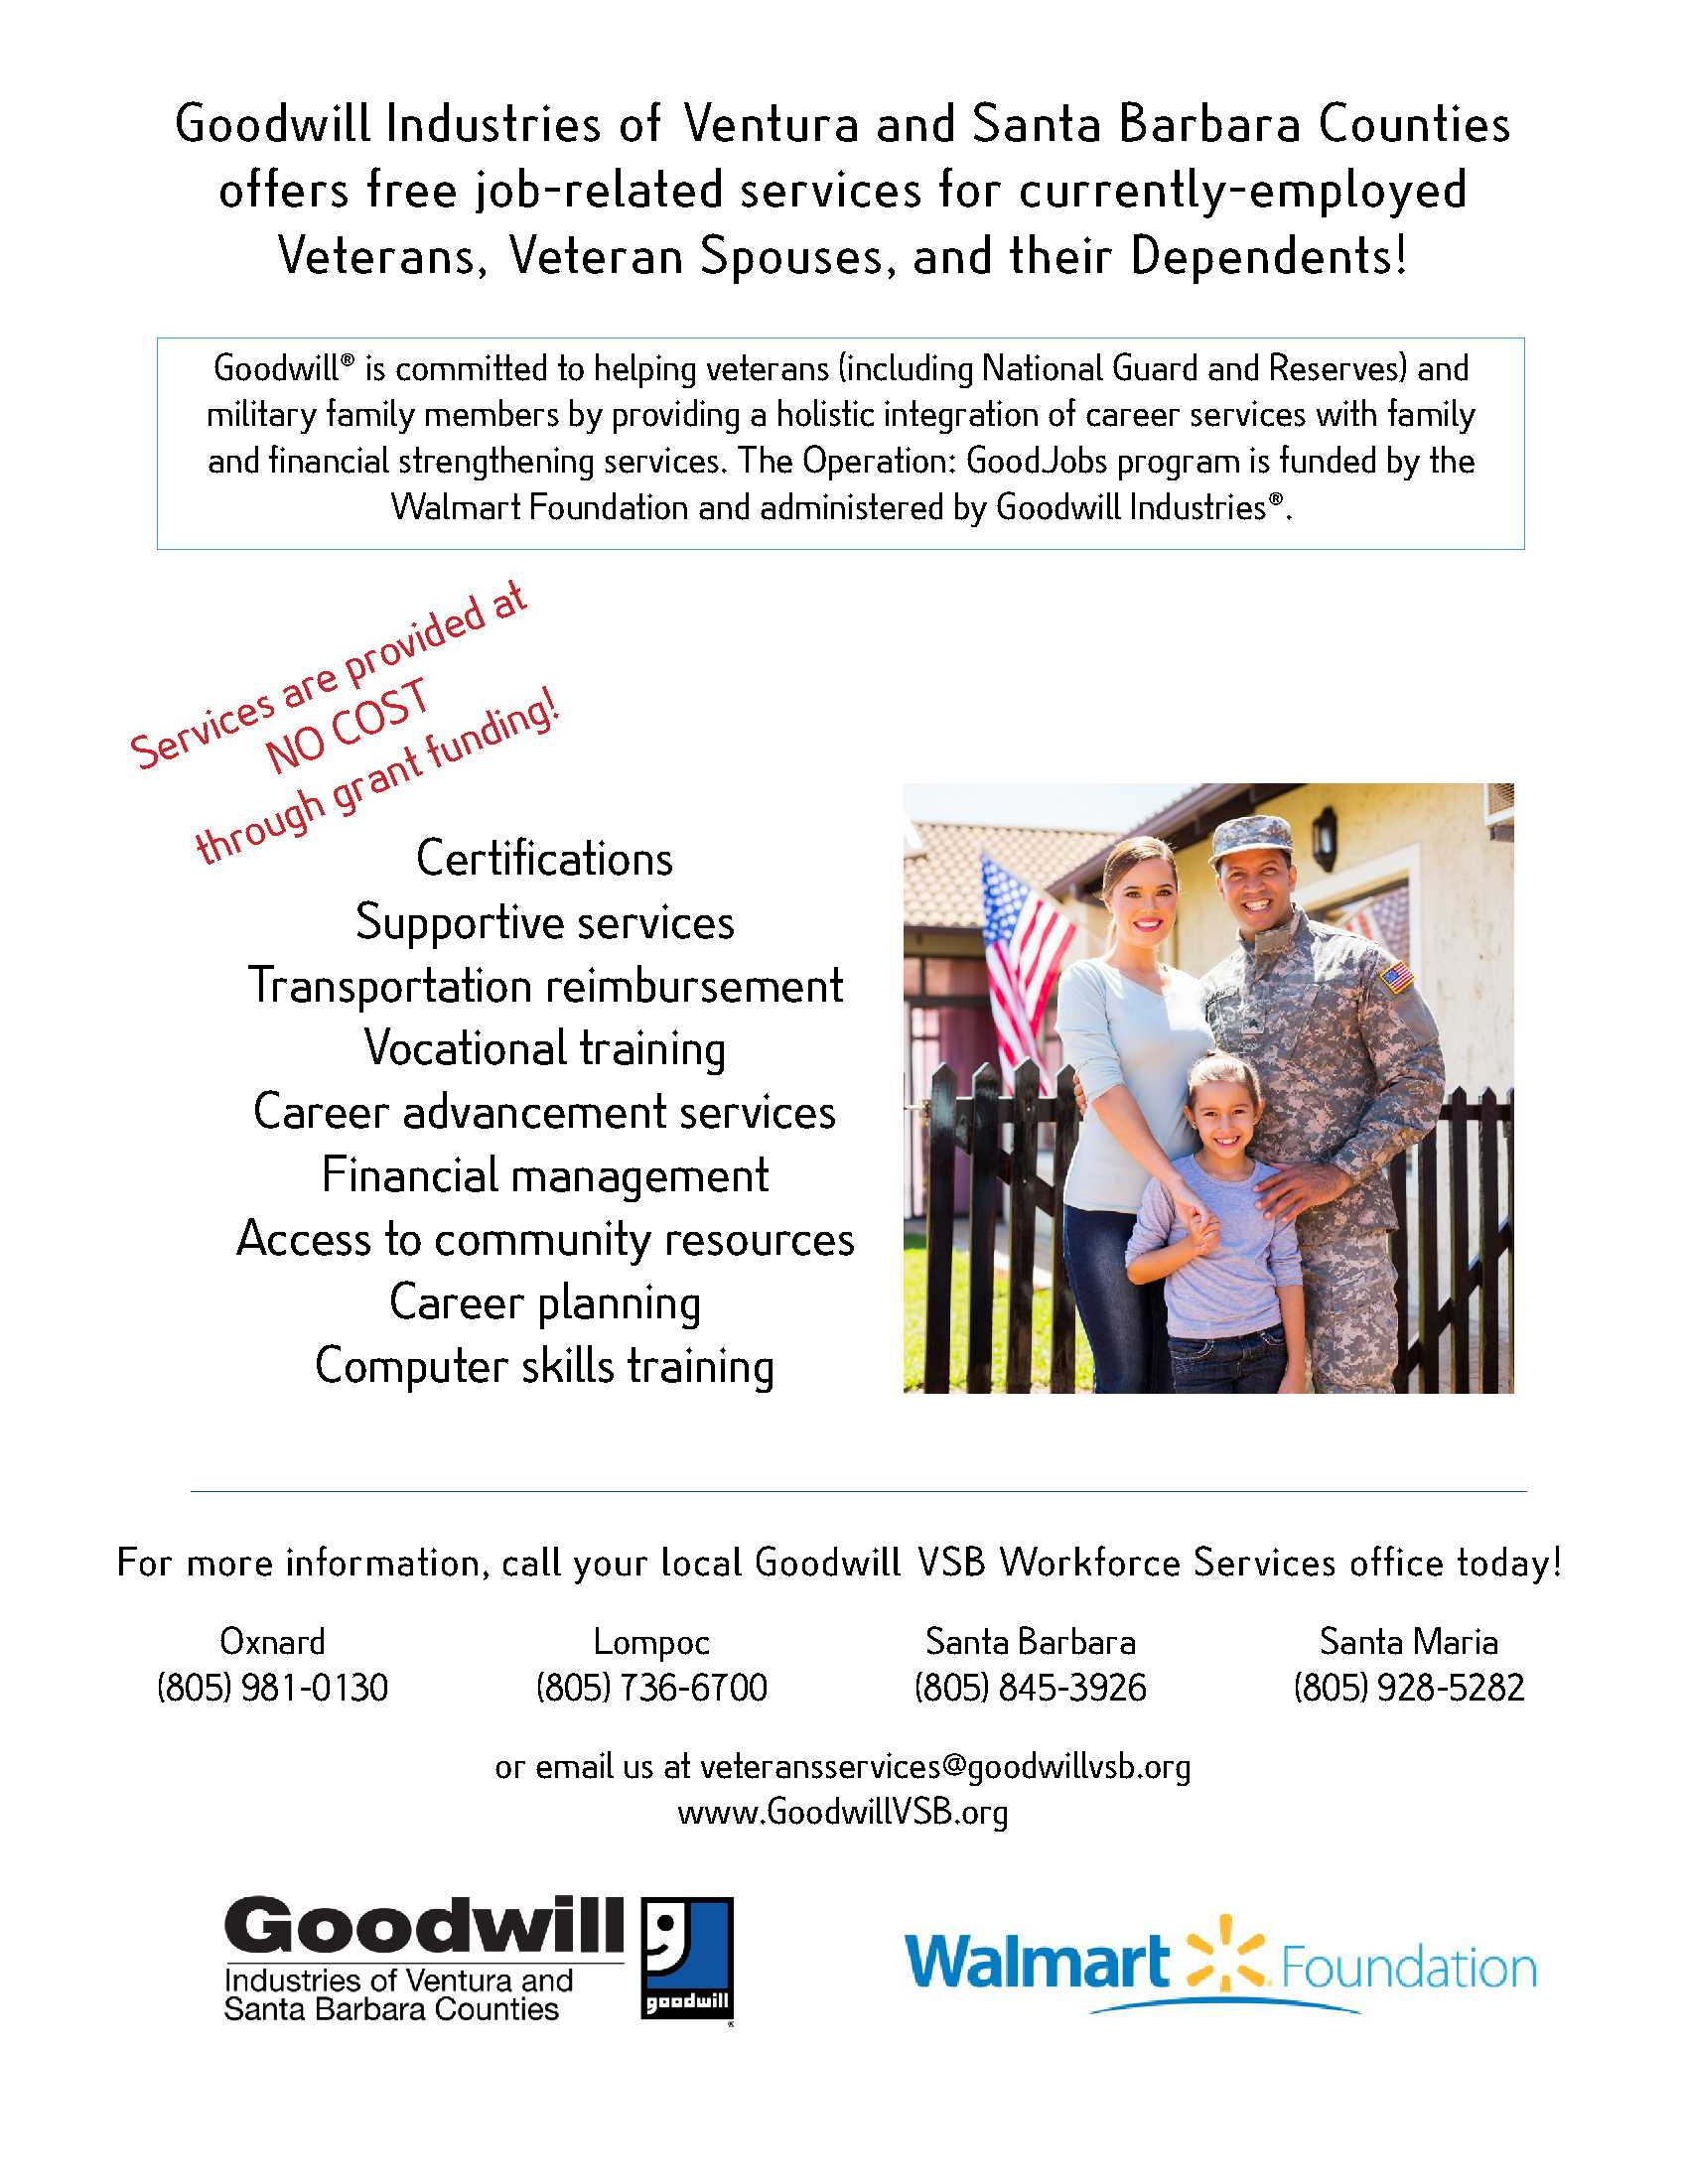 Goodwill Veterans Flyer Currently Employed